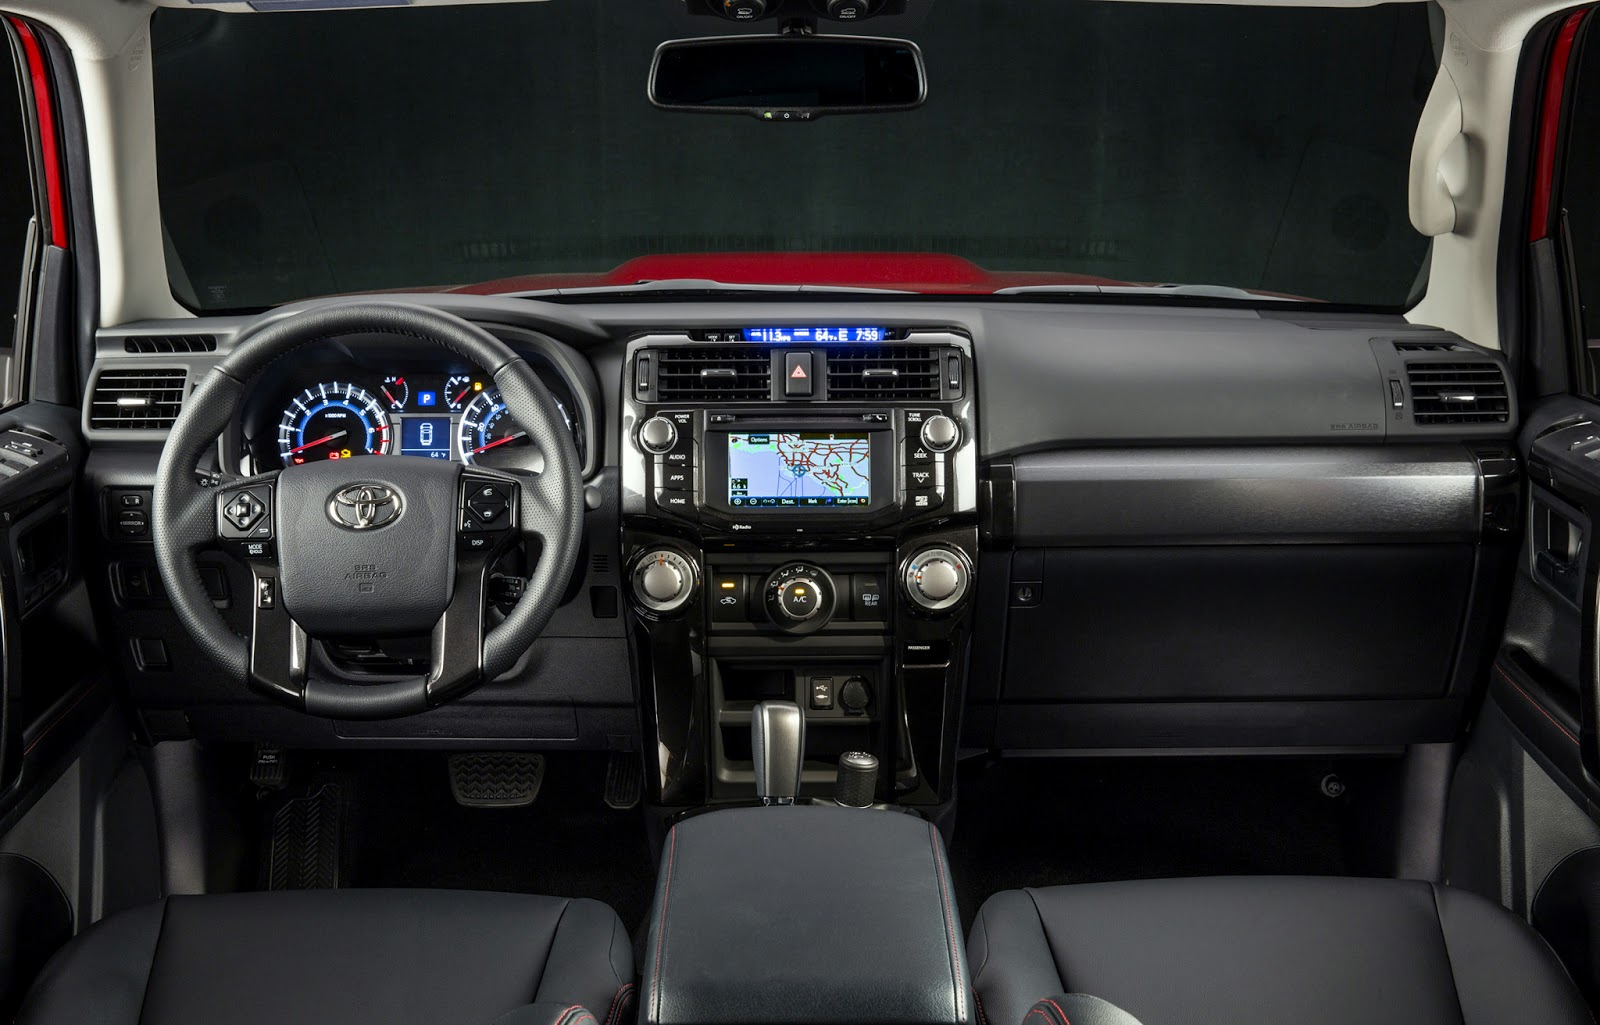 Toyota intros new 2014 4 runner at music festival